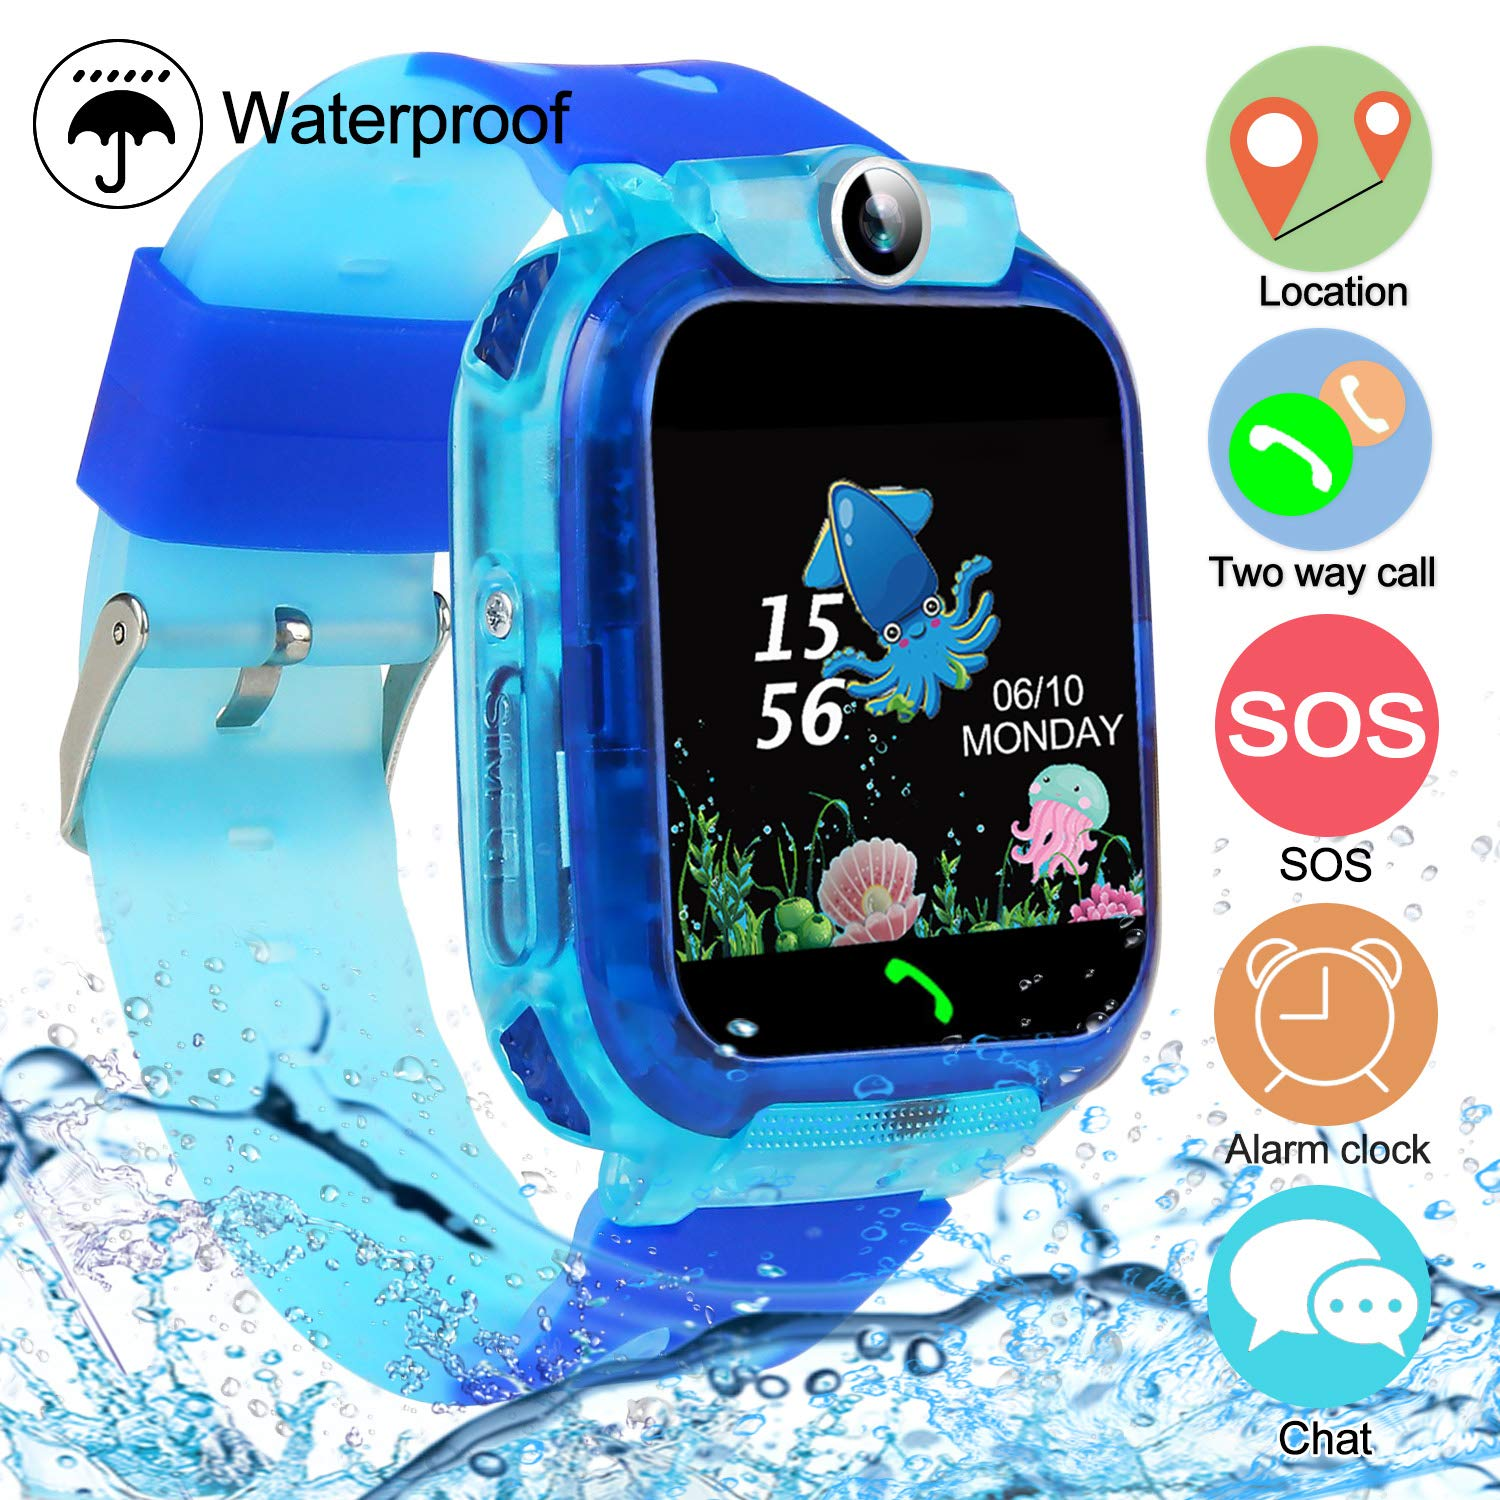 SZBXD Kids Waterproof Smart Watch Phone, LBS/GPS Tracker Touchscreen Smartwatch Games SOS Alarm Clock Camera Smart Watch Christmas Birthday Gifts for School Boy Girls (Light Blue) by SZBXD